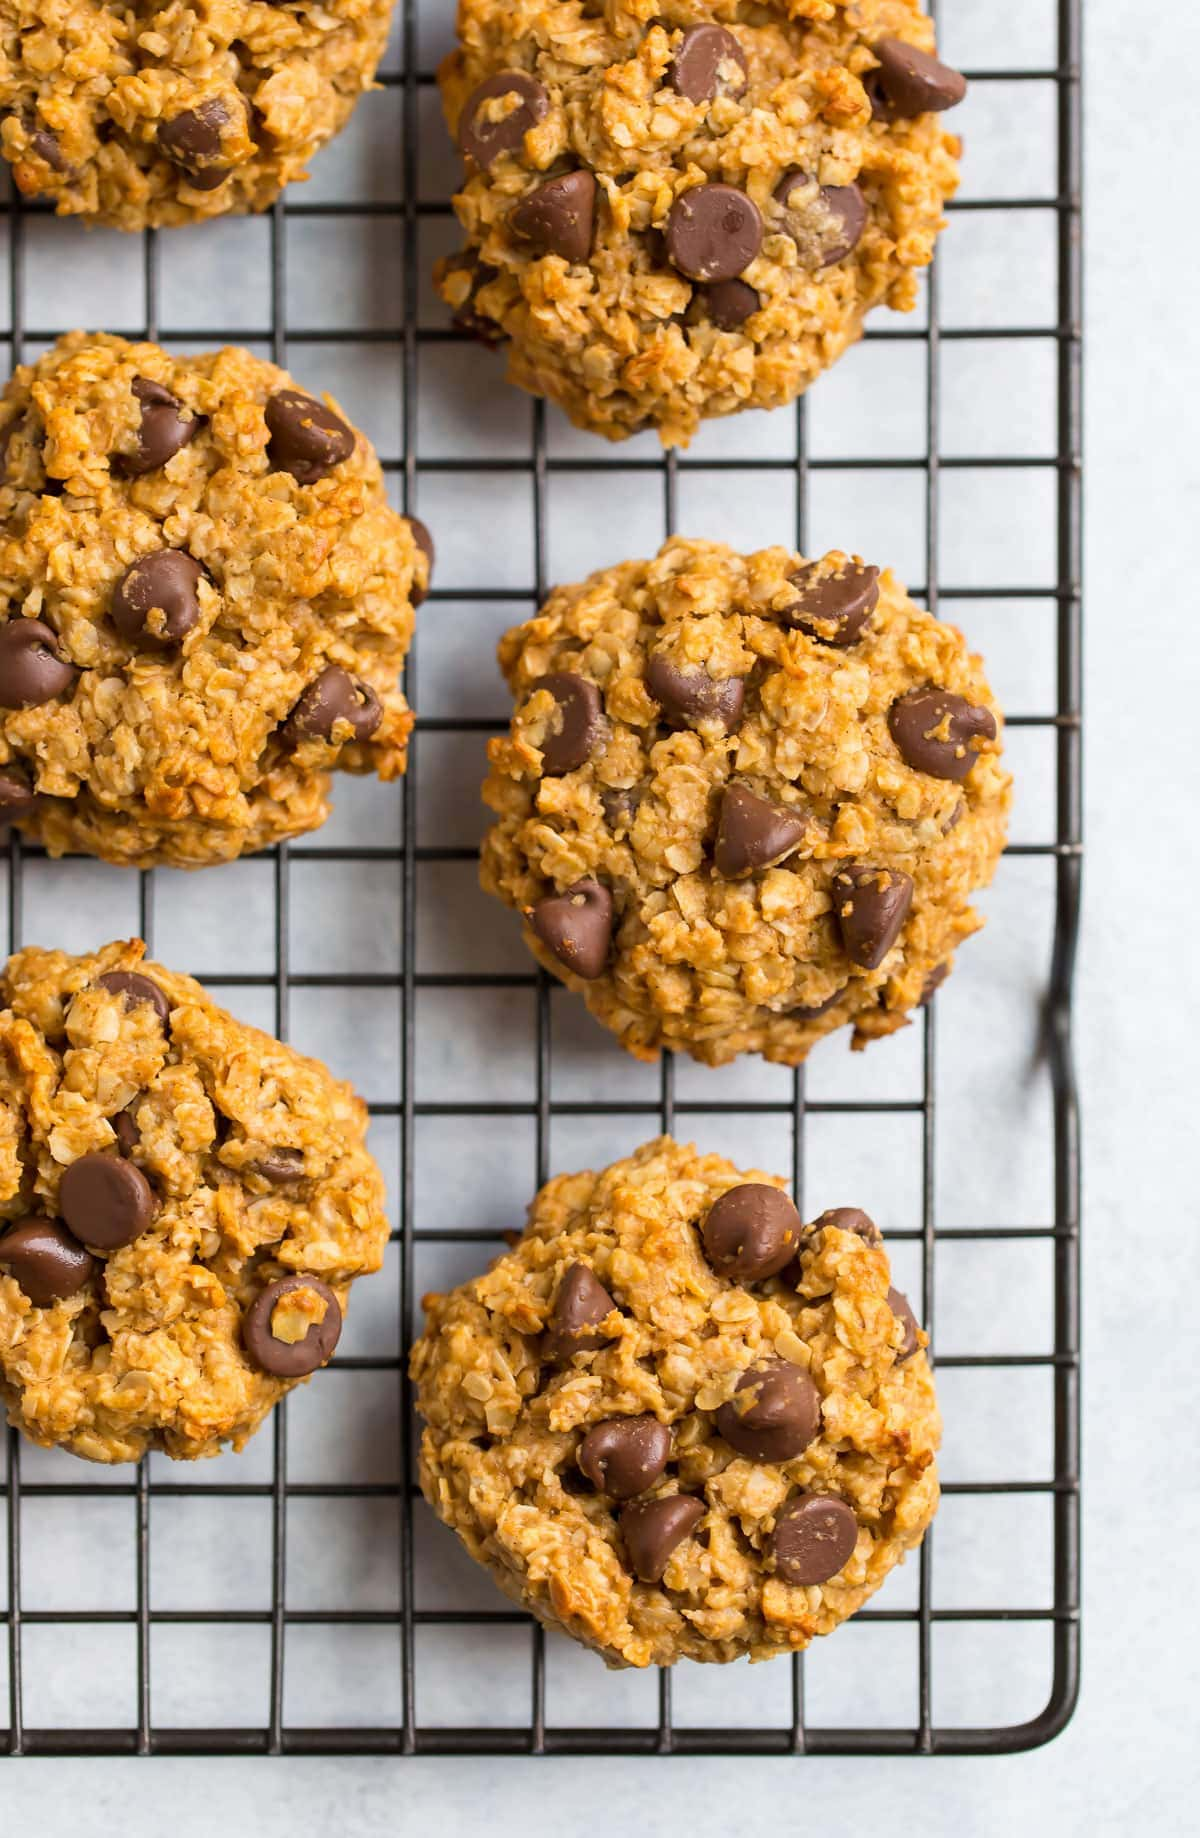 Healthy peanut butter oatmeal cookies with chocolate